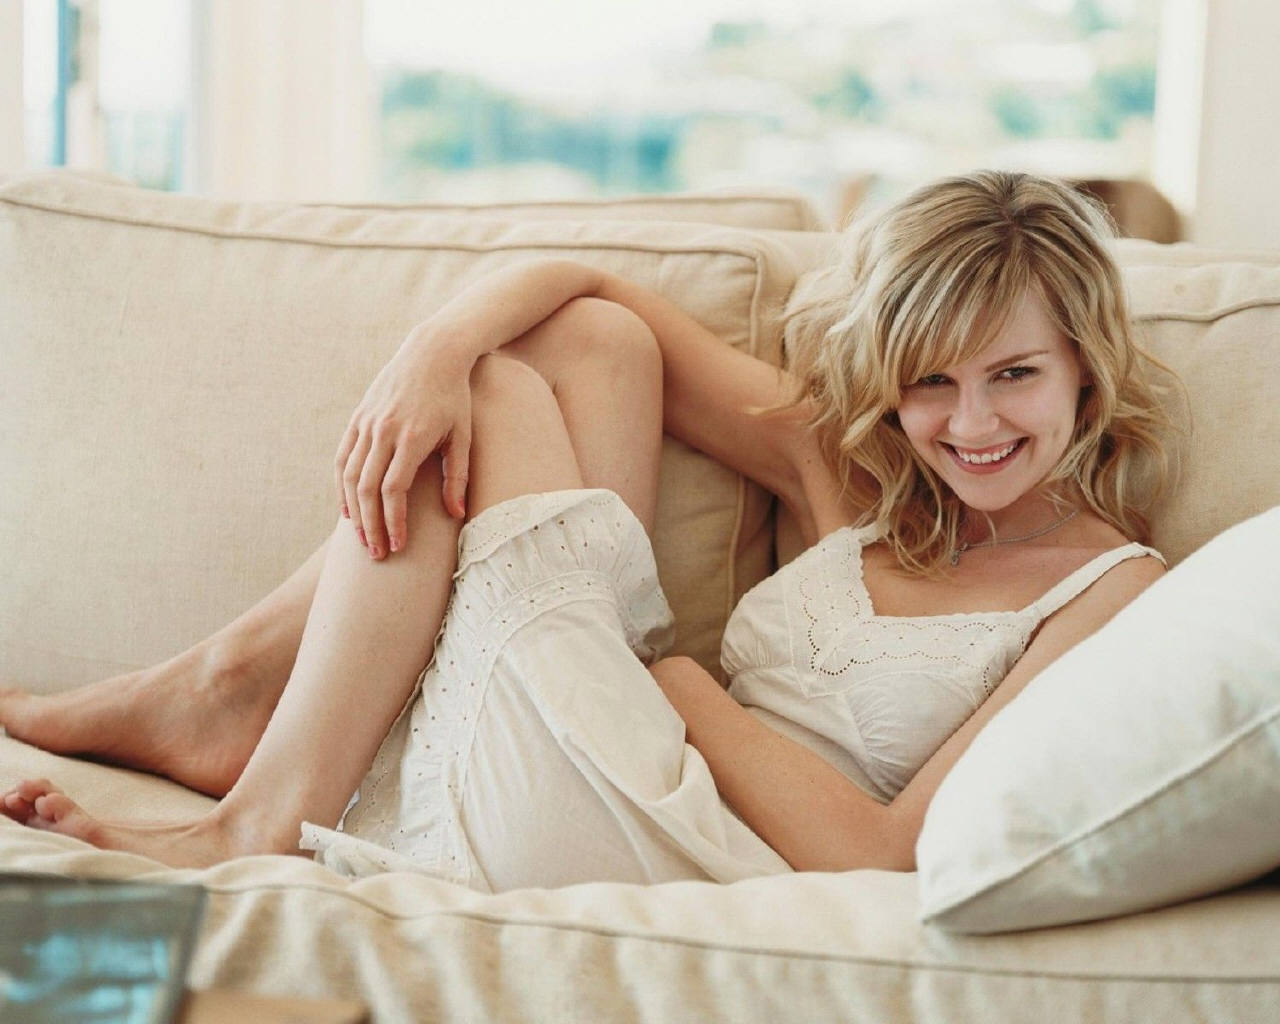 Kirsten Dunst images Kirsten Dunst HD wallpaper and  : Kirsten Dunst kirsten dunst 19379712801024 from www.fanpop.com size 1280 x 1024 jpeg 131kB